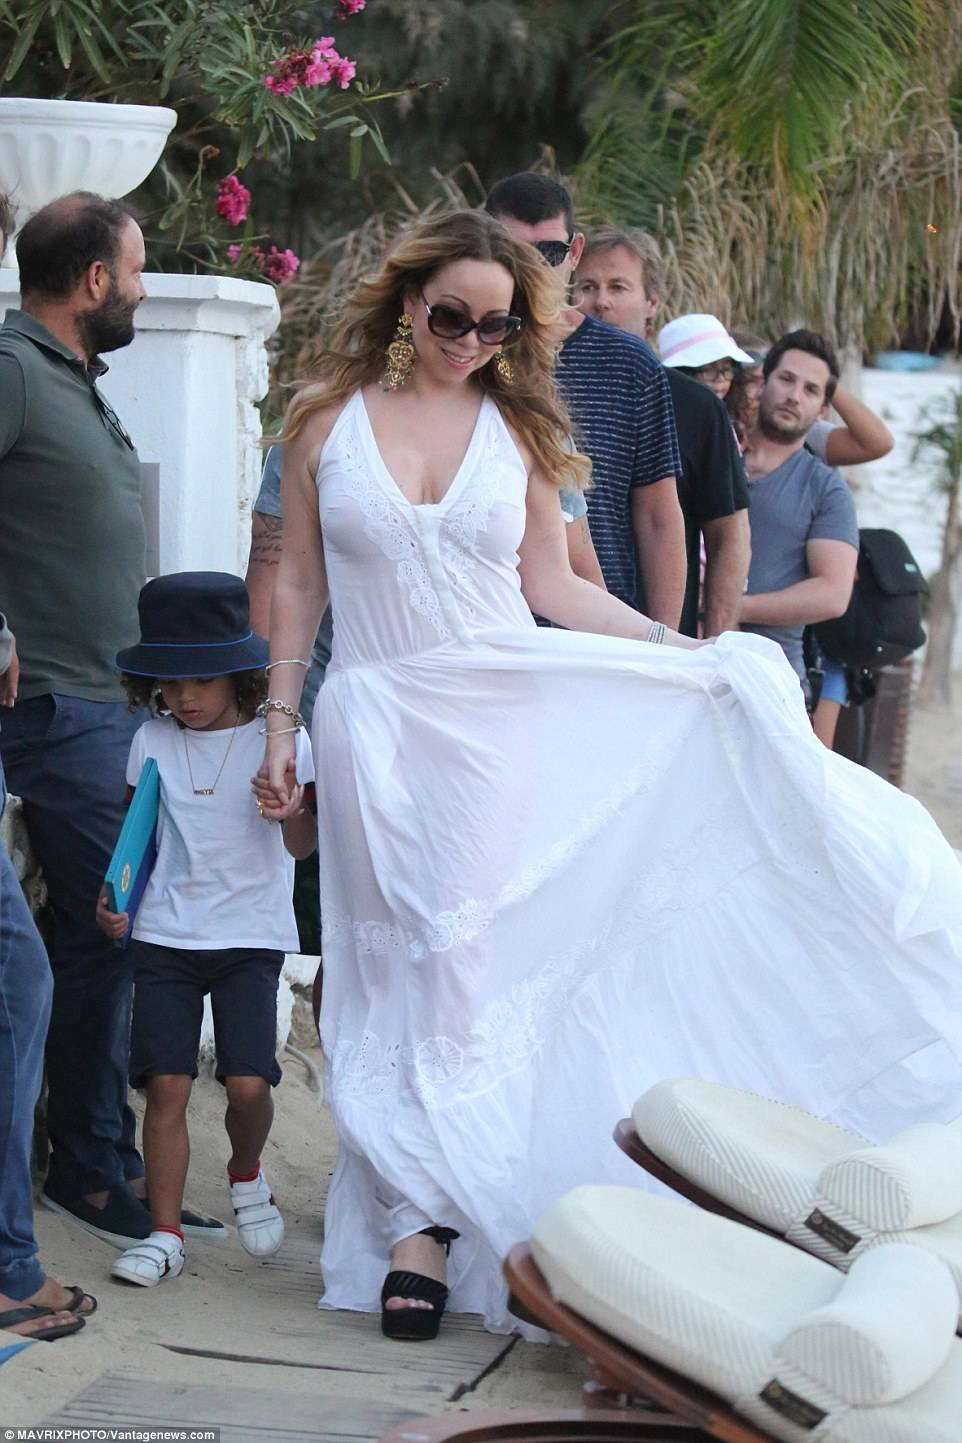 Mariah Carey was spotted out for dinner and partying by the sea in gorgeous floor length beach dress